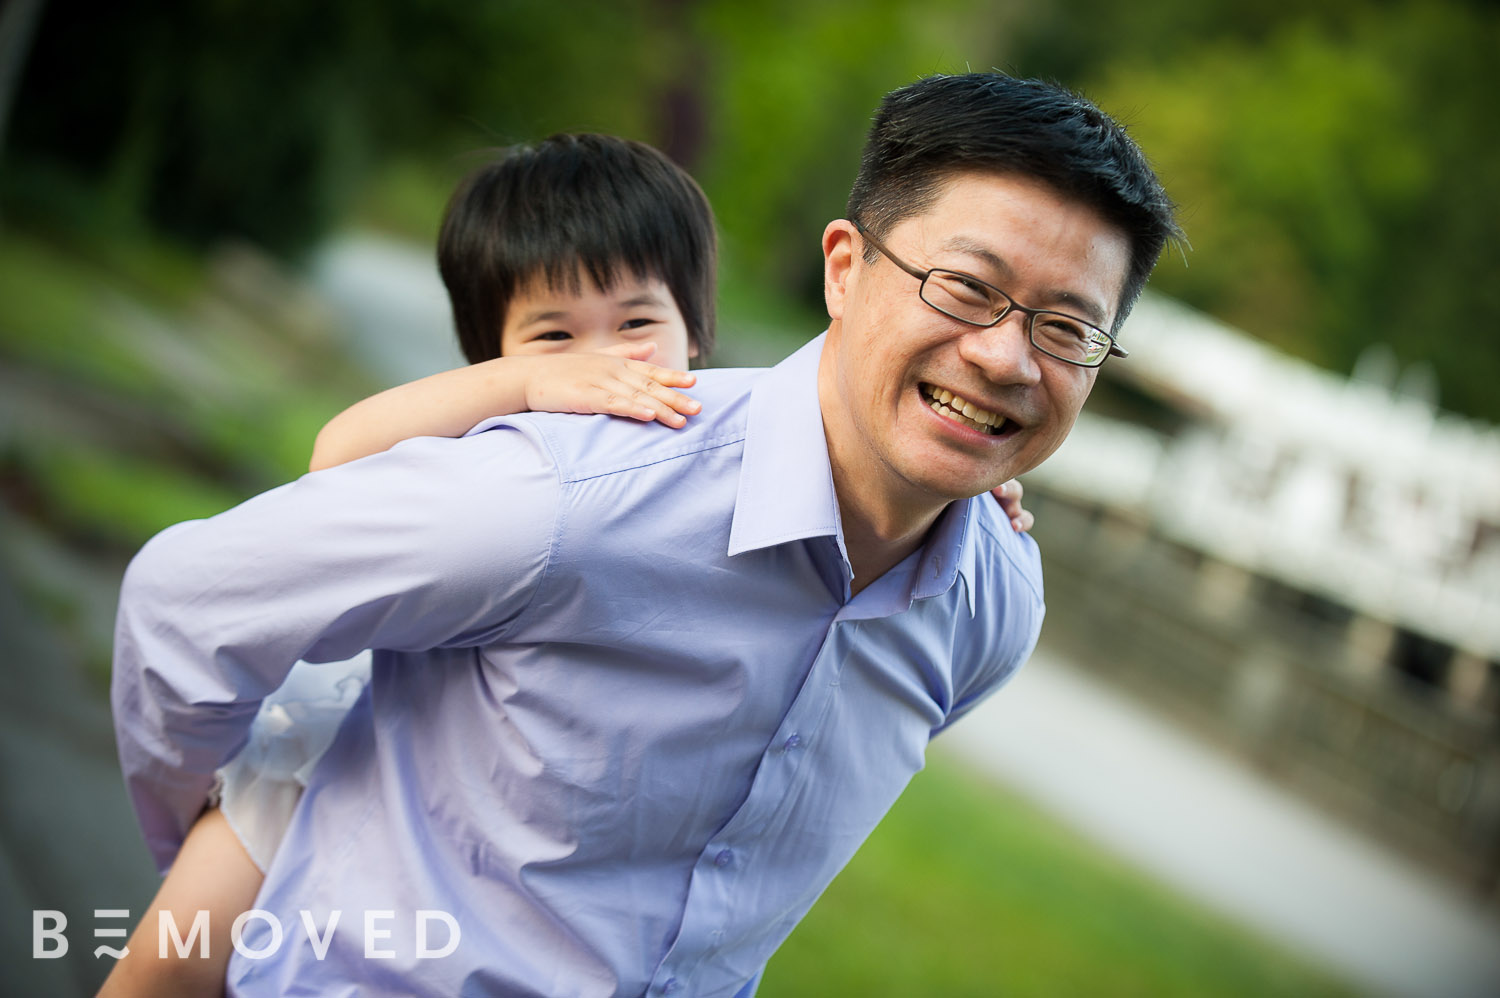 009_stanley-park-family-photography.jpg